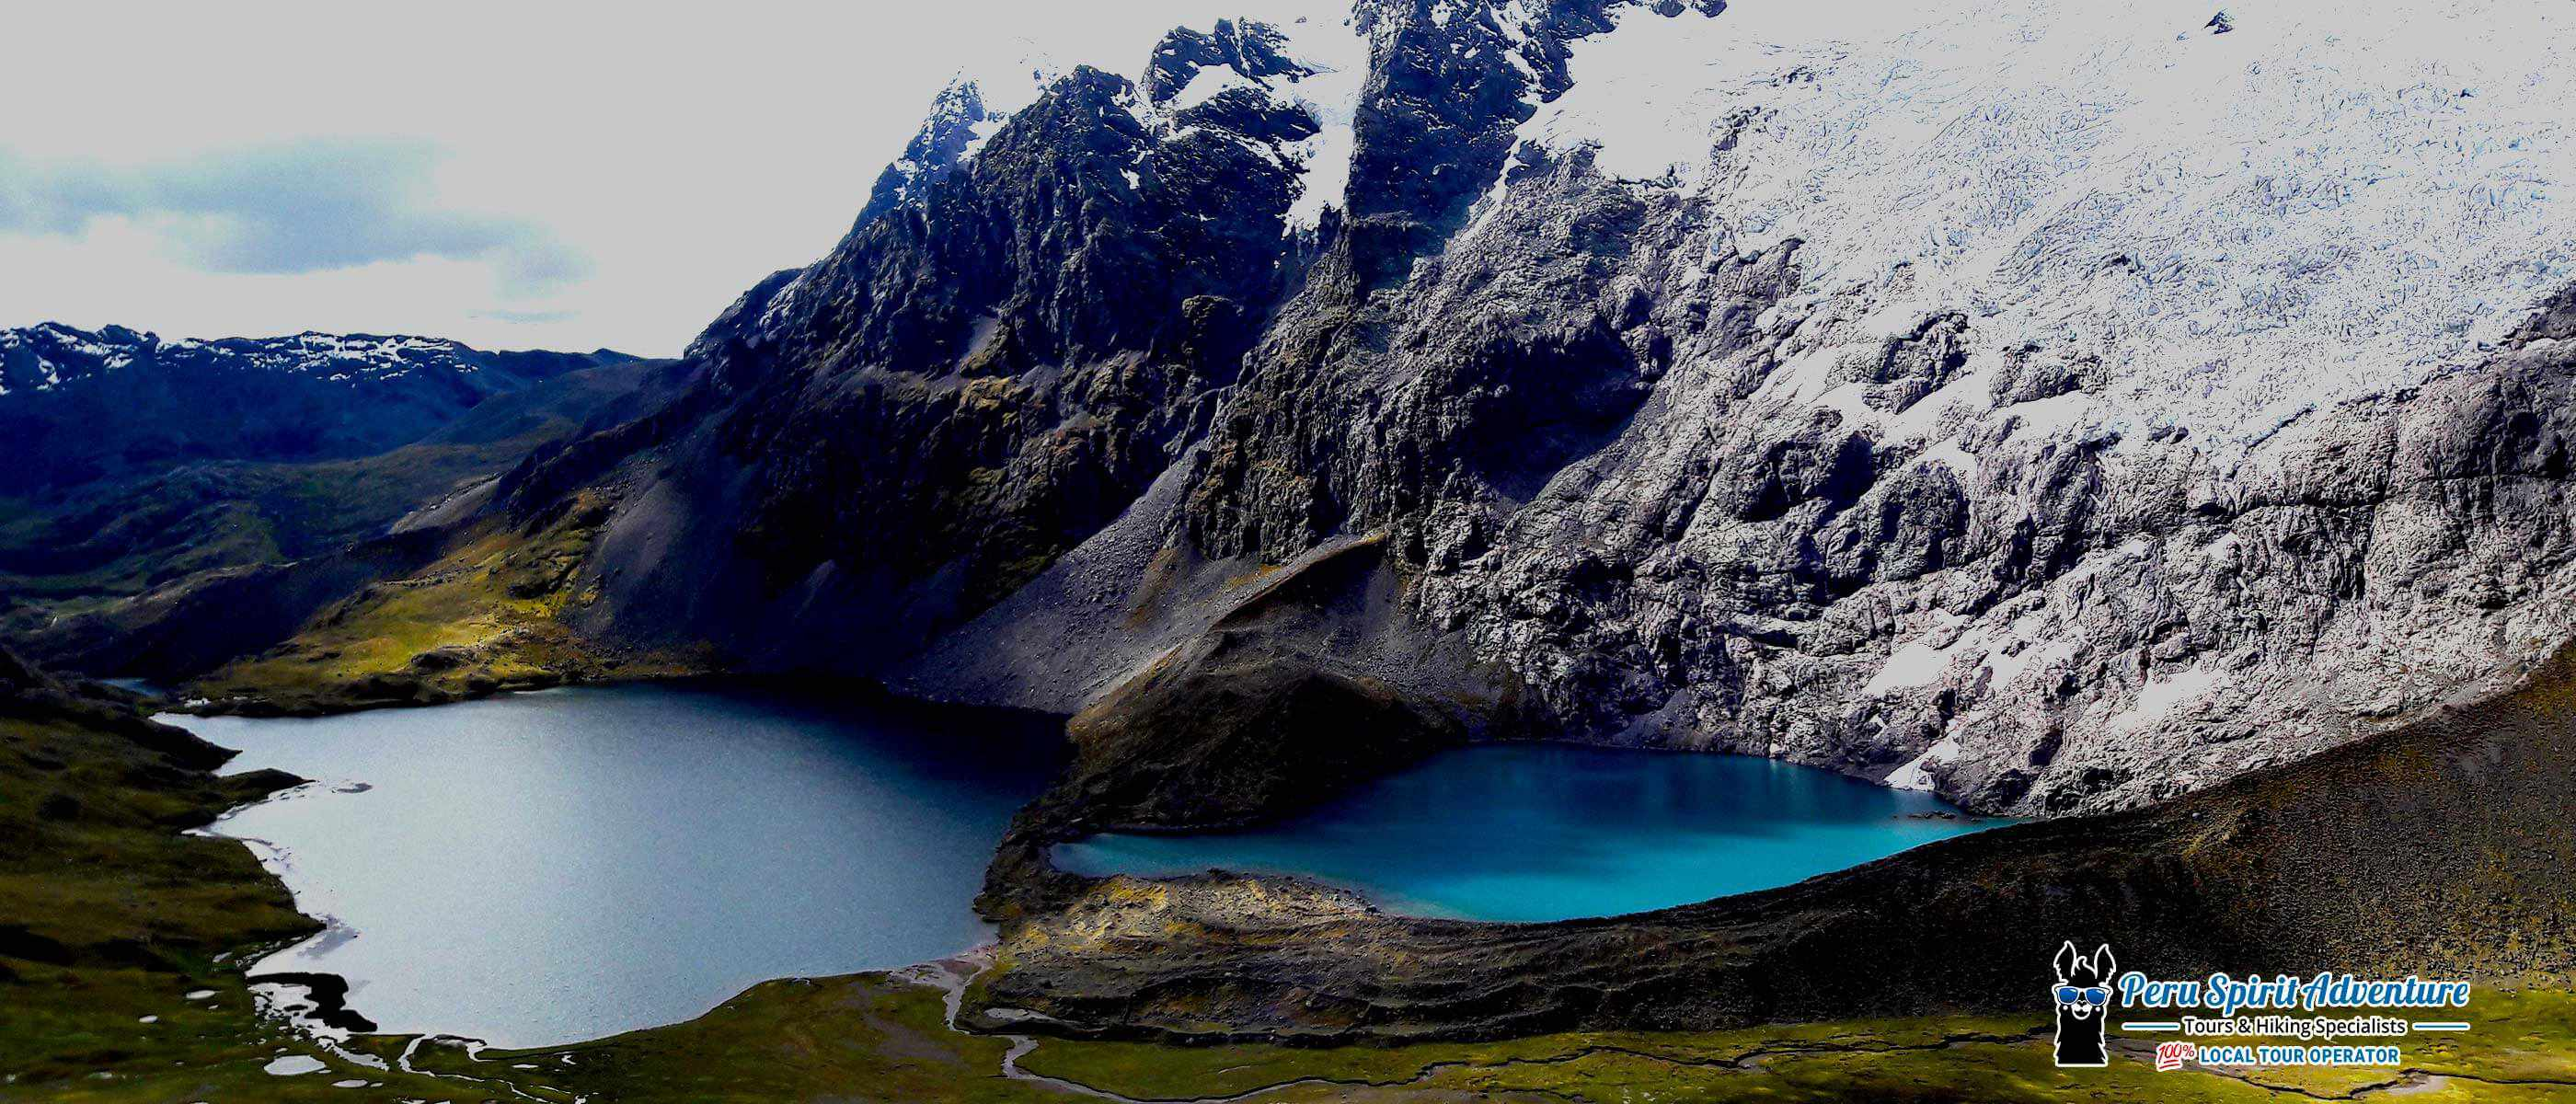 Enjoy the gorgeous views of the blue lakes and the Ausangate Glacier Peak on Ausangate trek